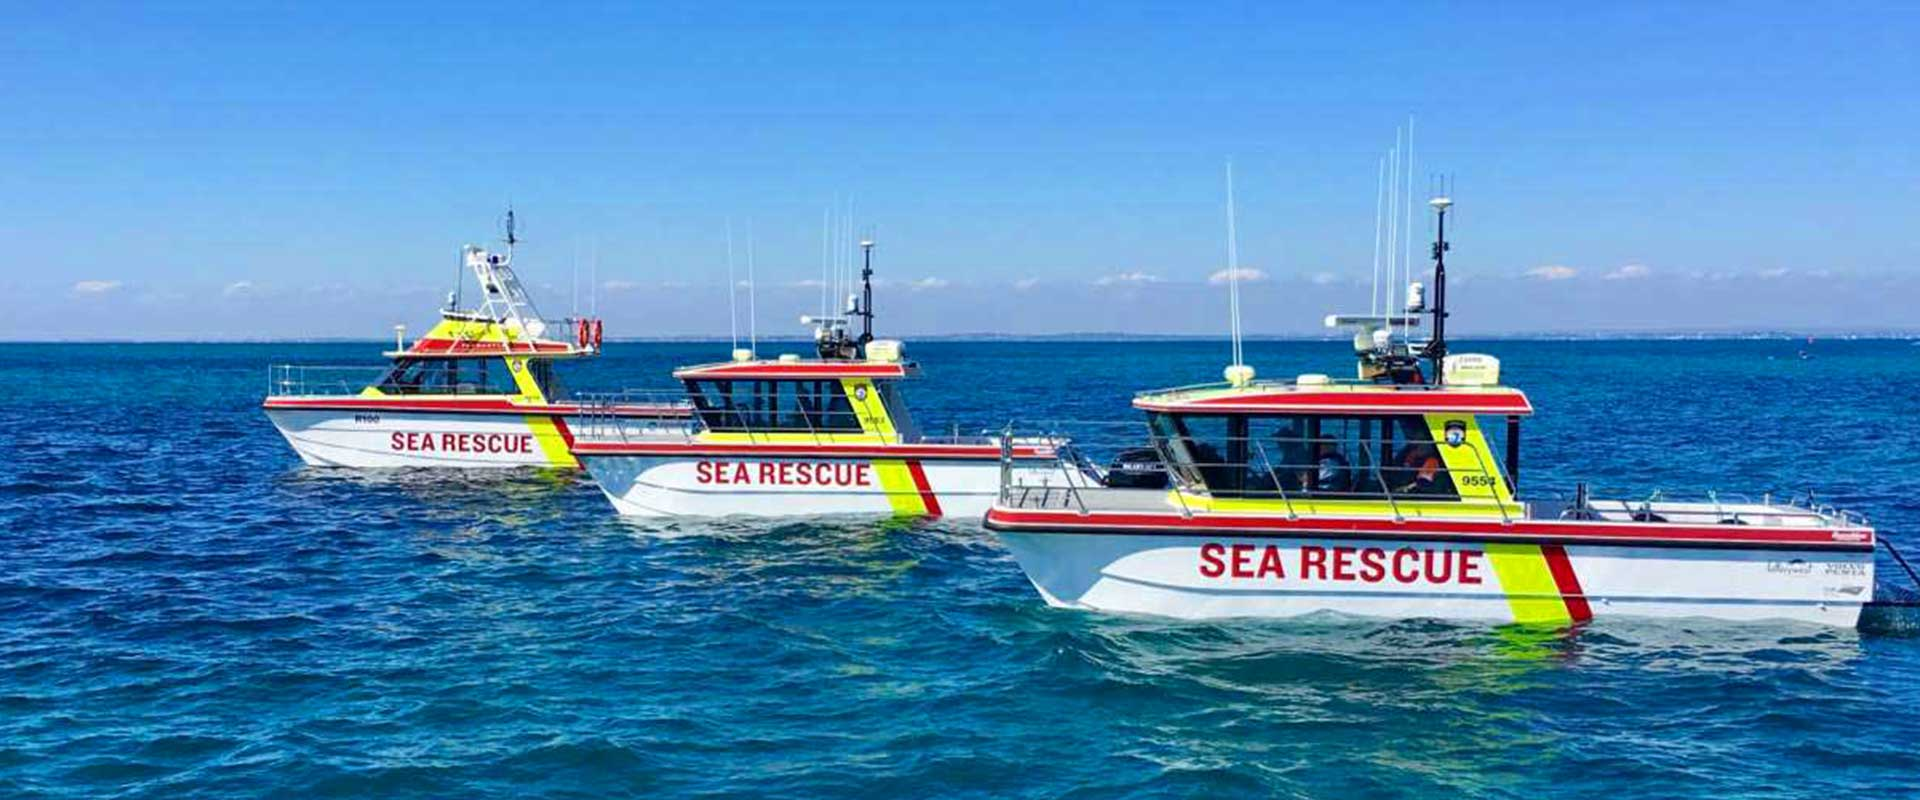 Waterproof vehicle graphic for Sea Rescue Perth by Imagesource